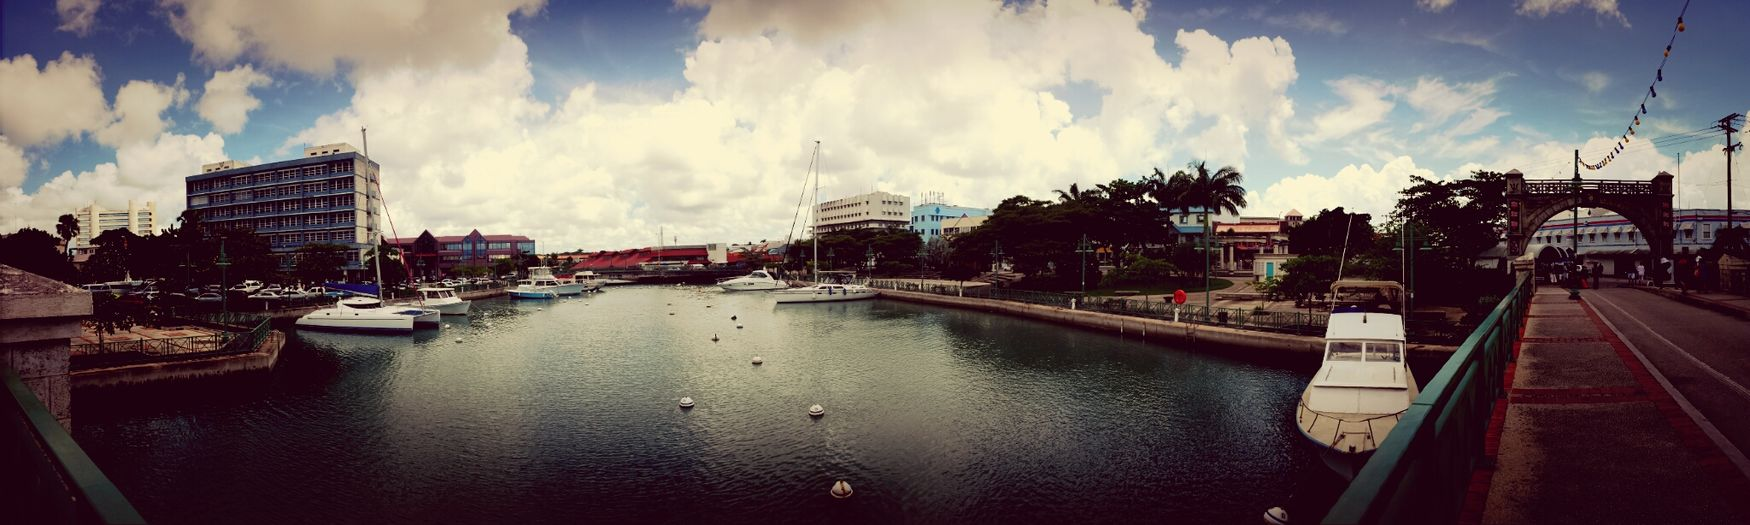 Bridgetown, the city. Barbados NEXTshotPhotos Eye4photography  Cityscape